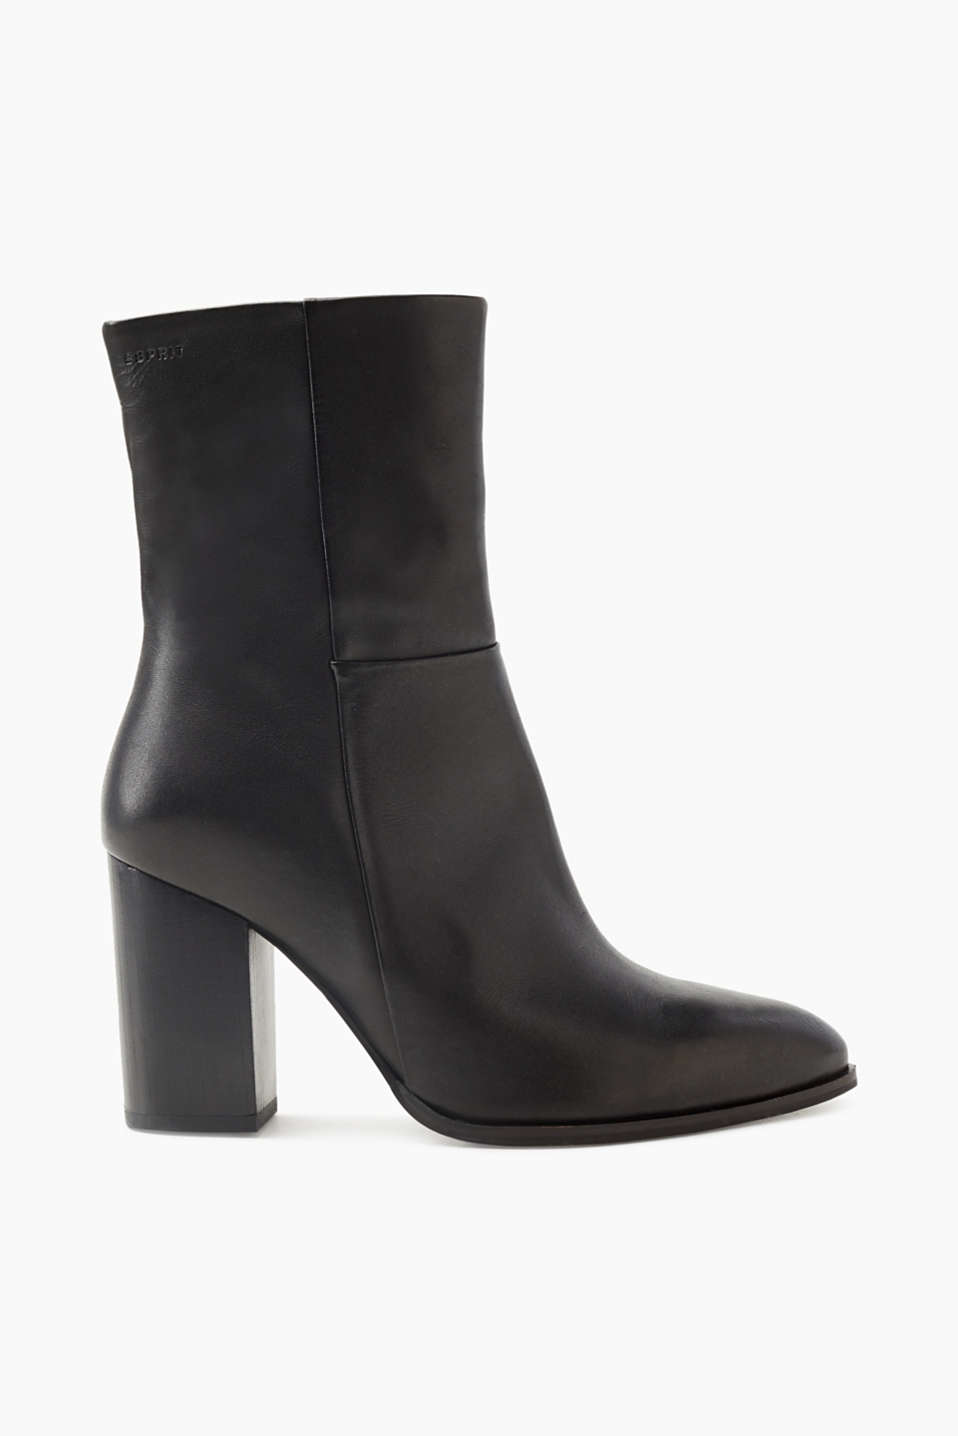 For elegant and casual looks: these ankle boots with a pointed heel and block heel will become your autumn favourite.